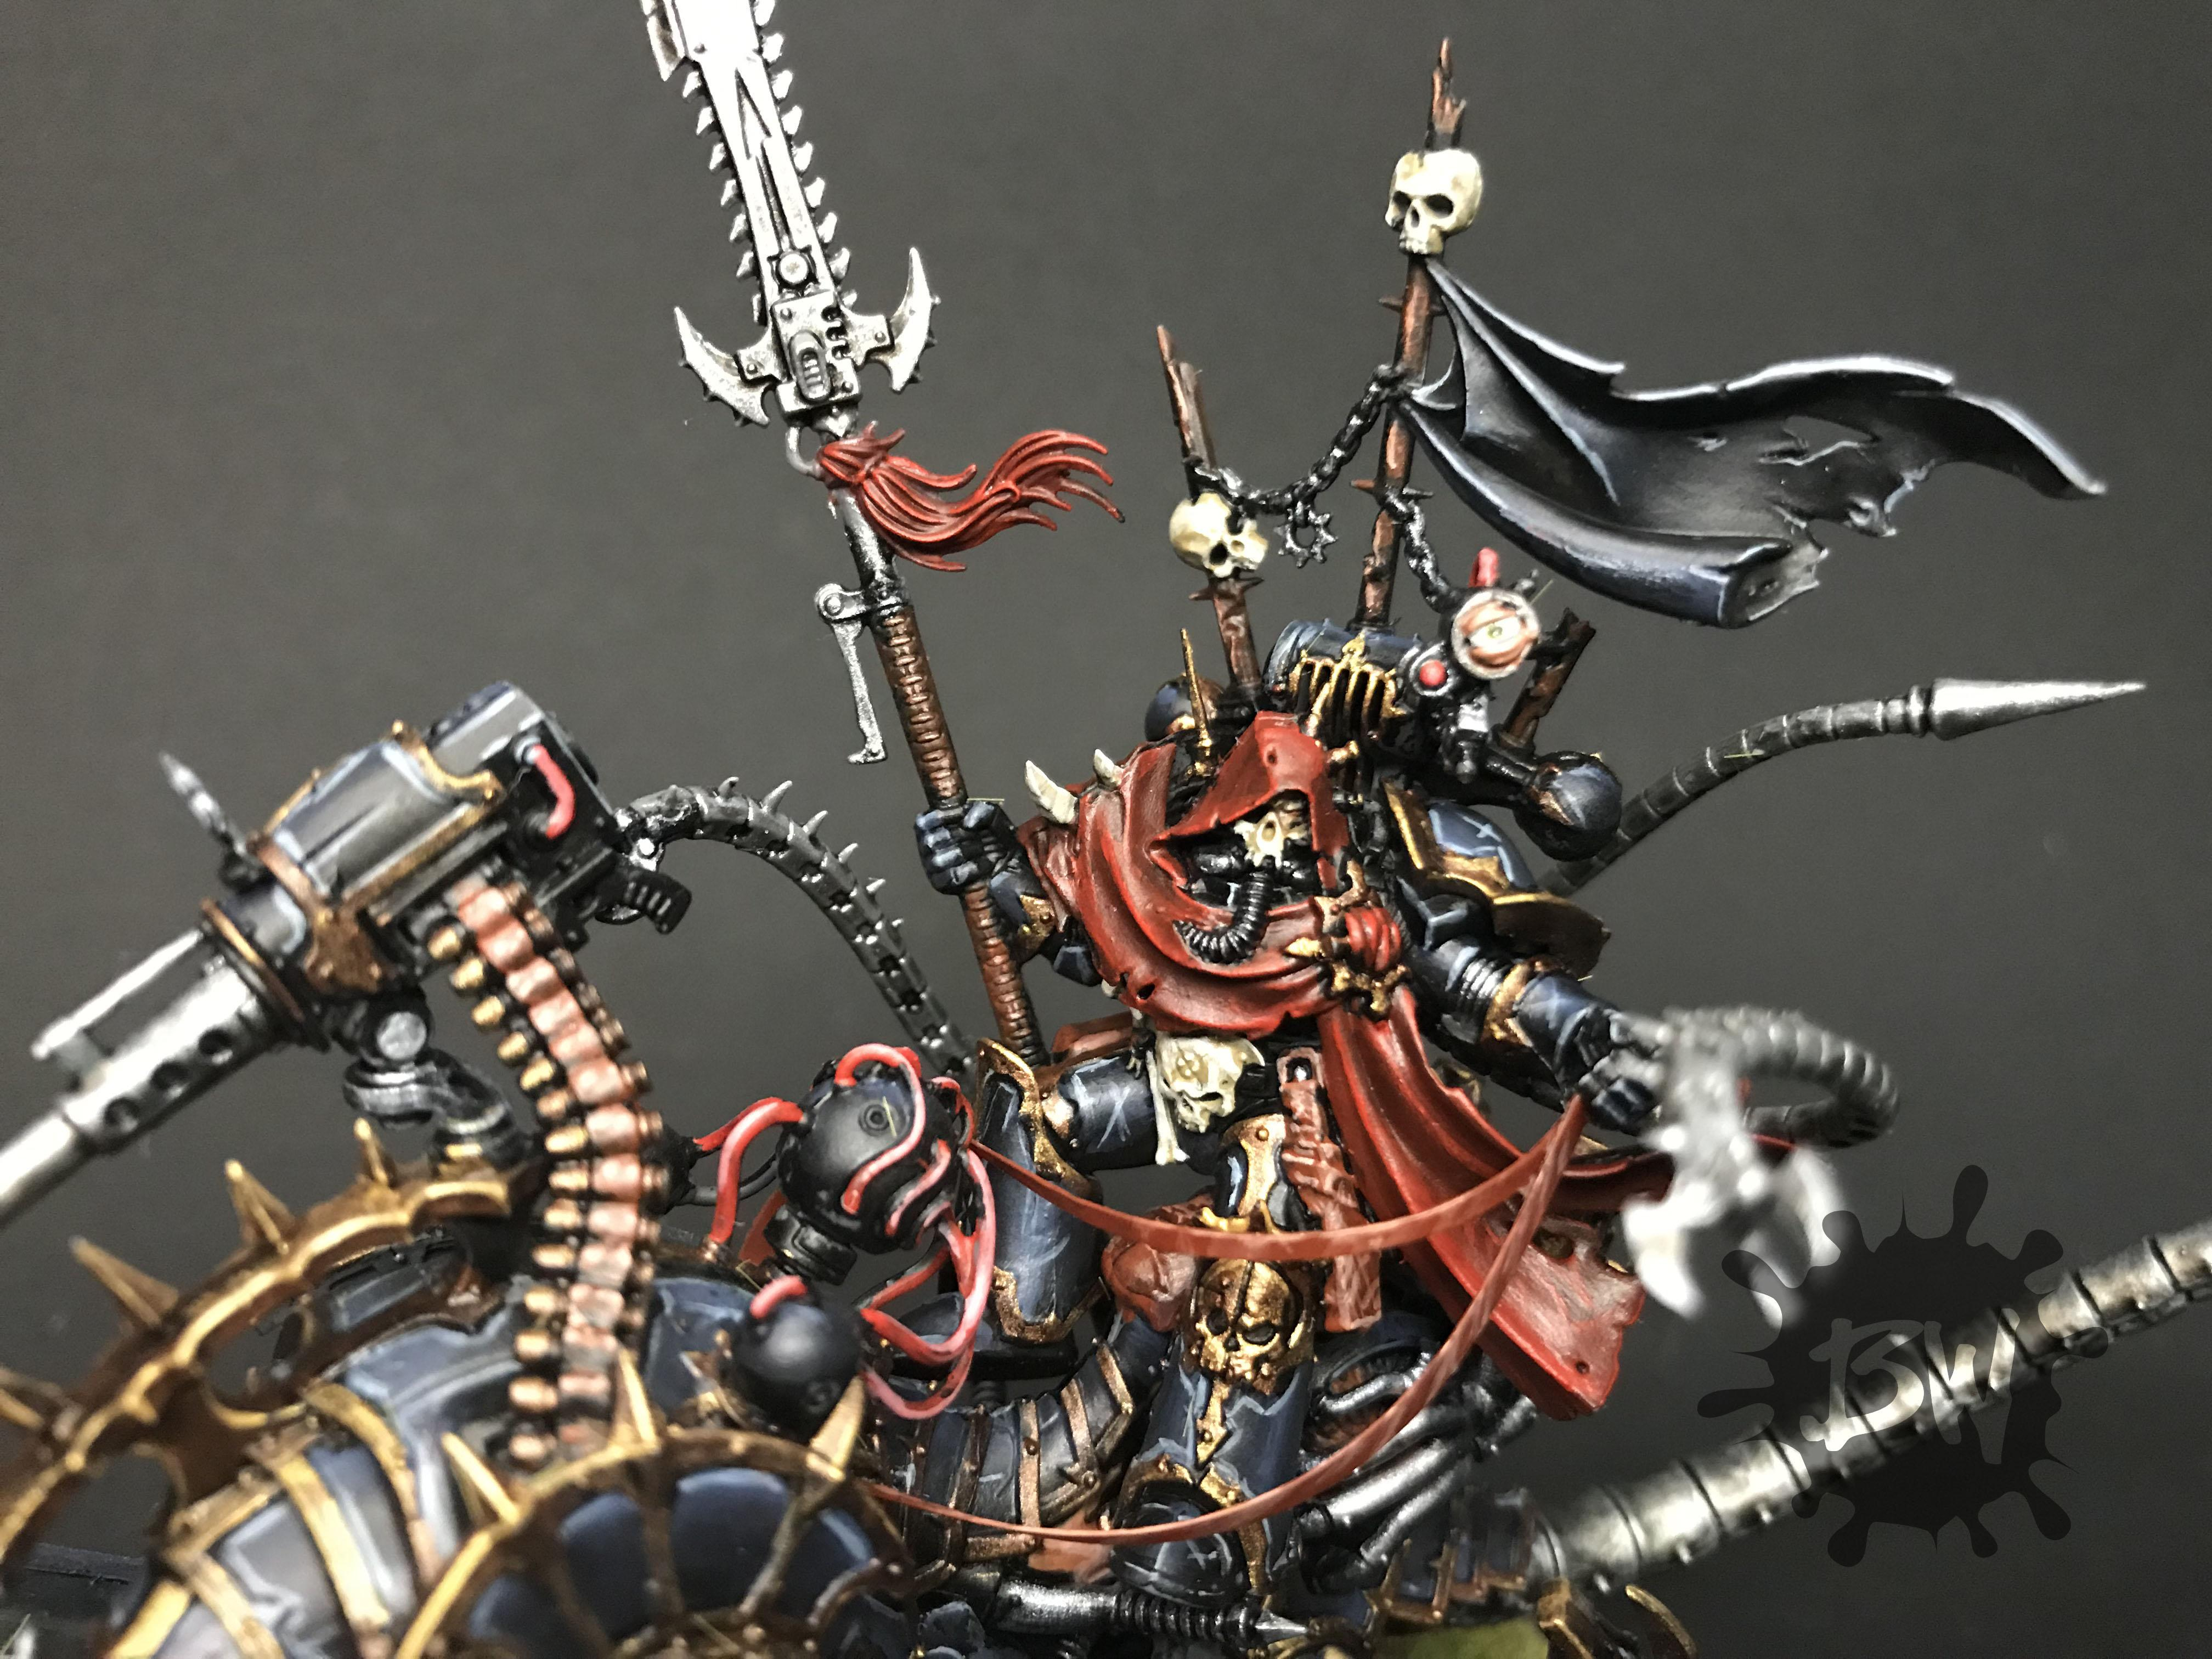 Bawpainting, Chaos, Commission, Games Workshop, Painting, Vex Machinator Arch-lord Discordant, Warhammer 40,000, Warhammer Fantasy